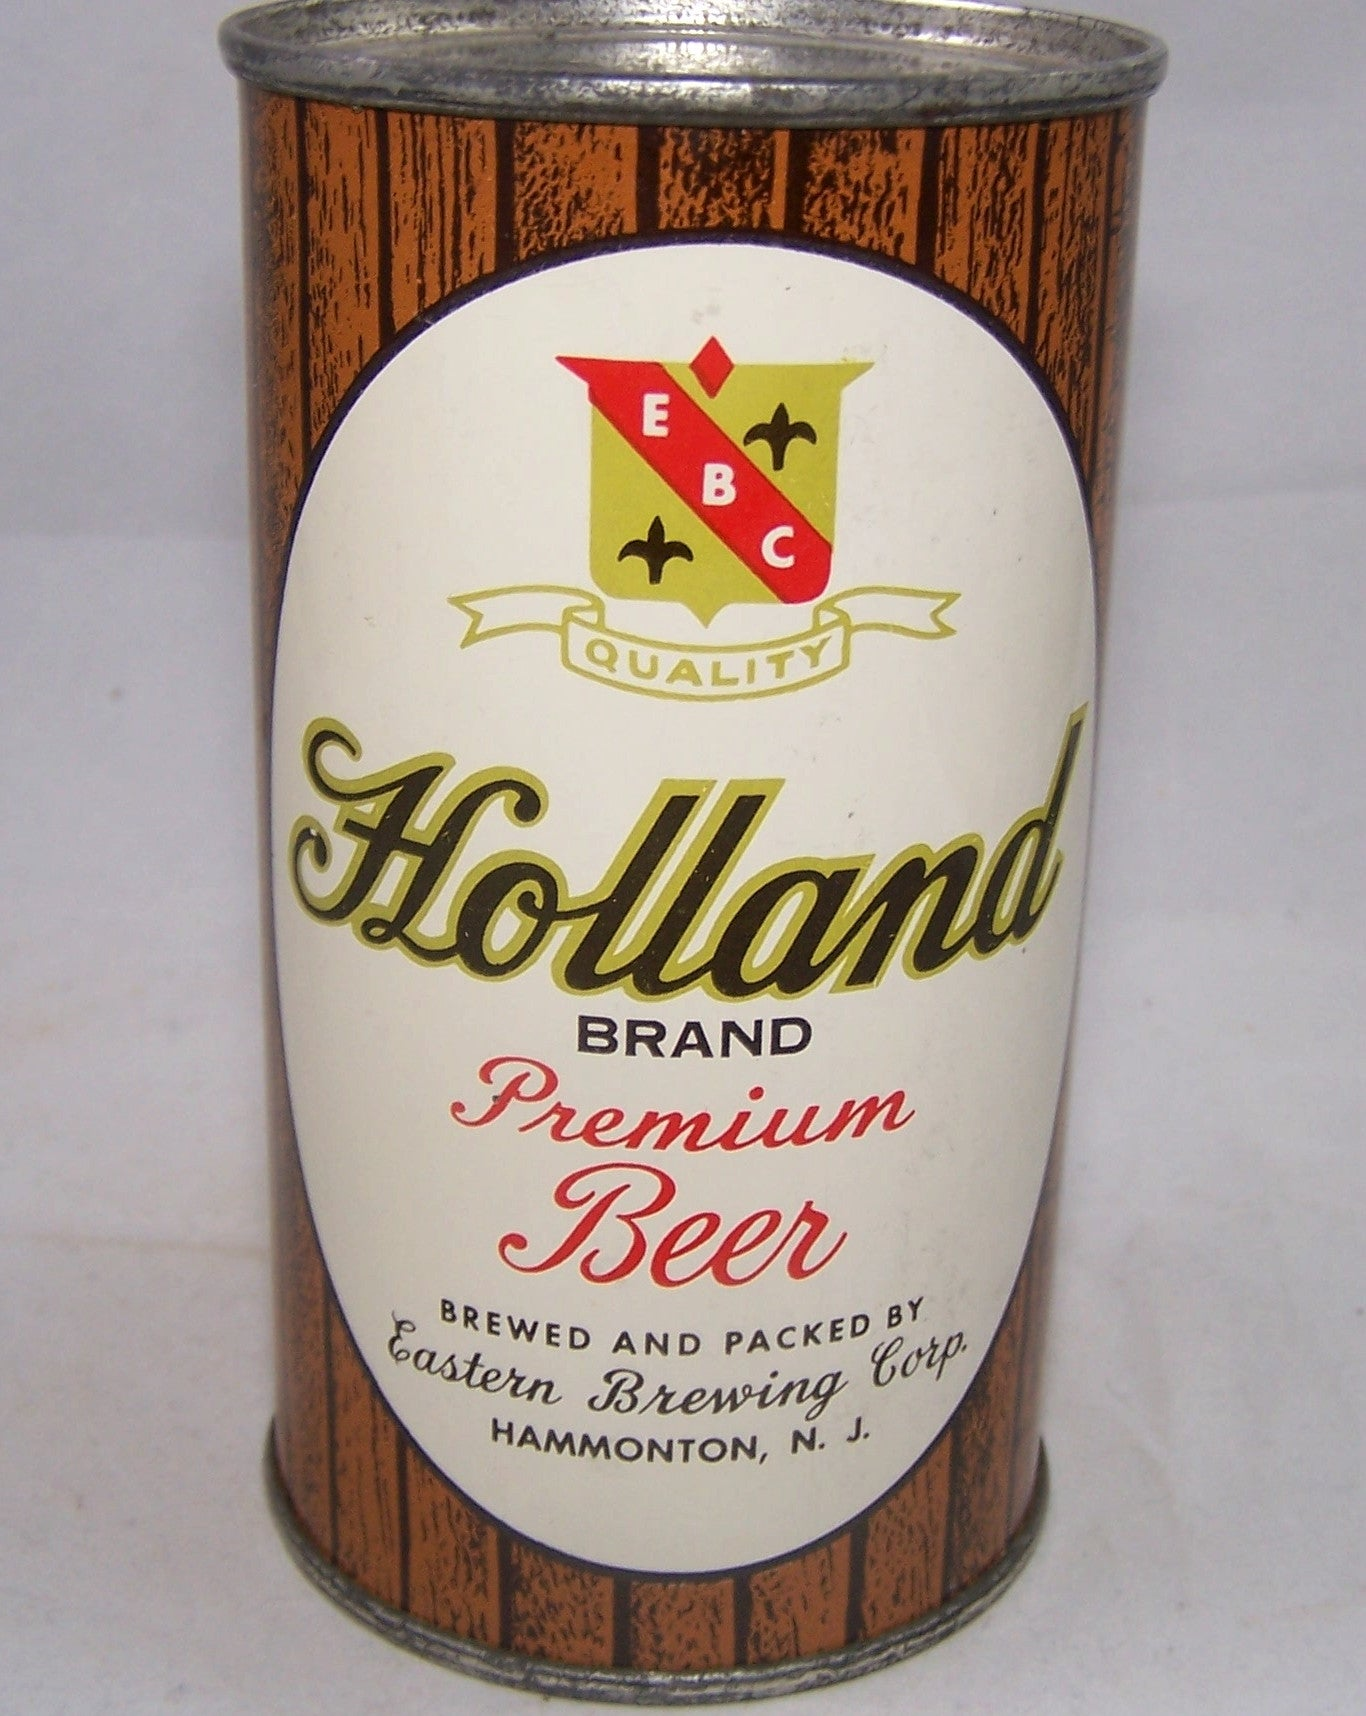 Holland Brand Premium Beer, USBC 83-09, Grade A1+ Sold on 06/14/17